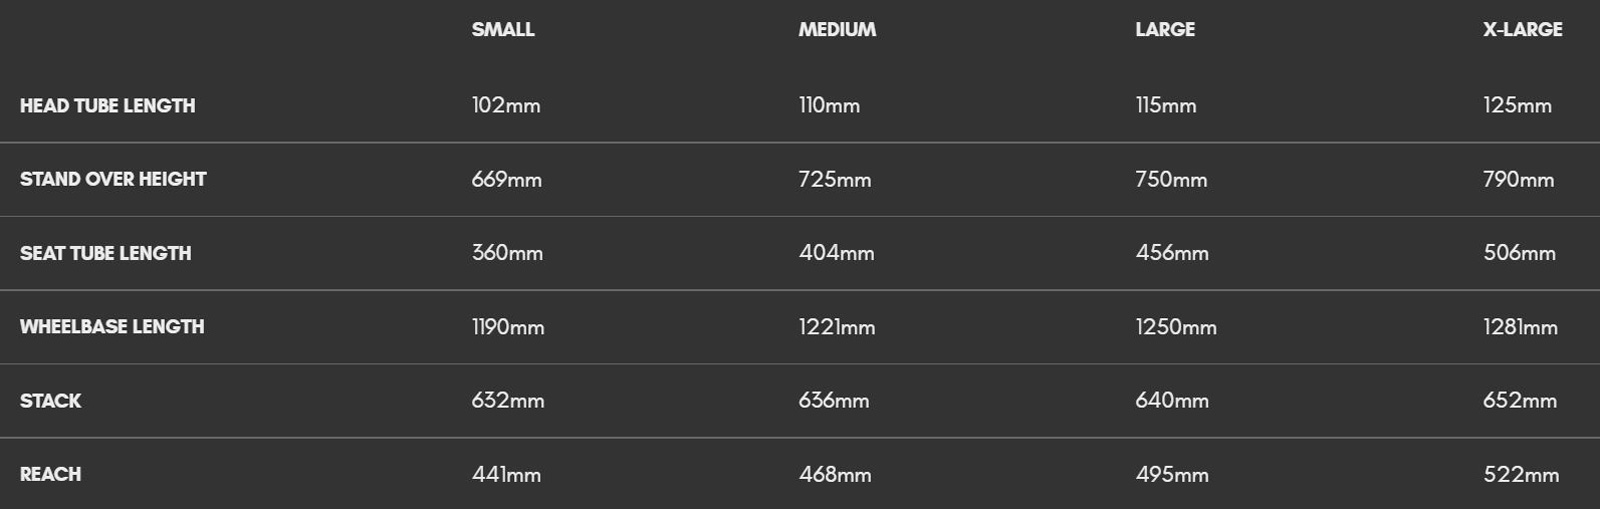 knolly tyaughton geometry chart reach standover top tube length